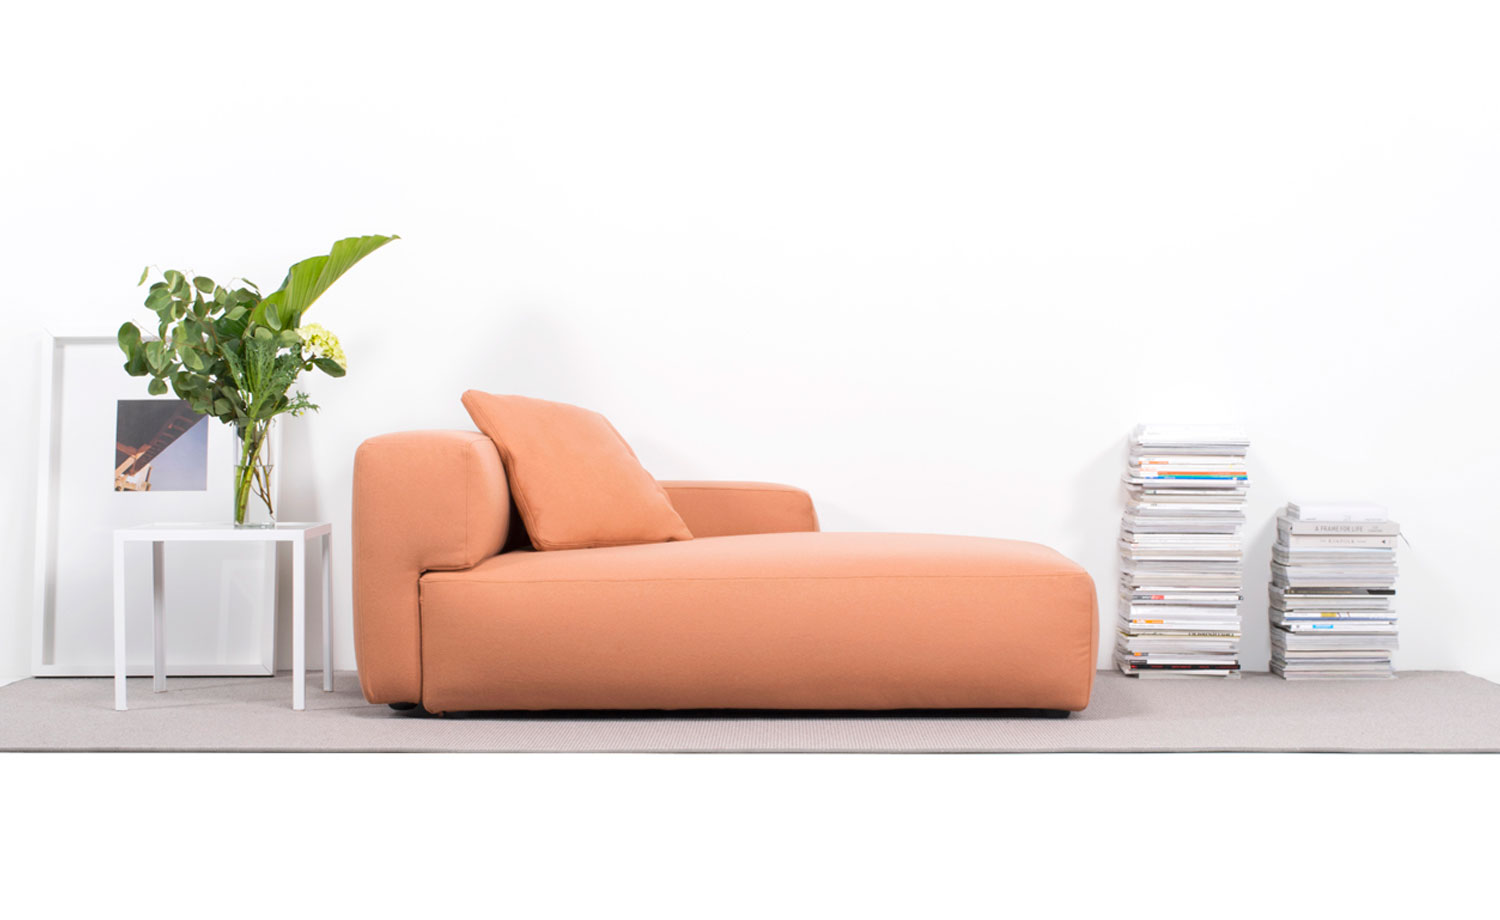 EXPO chaise longue image #0